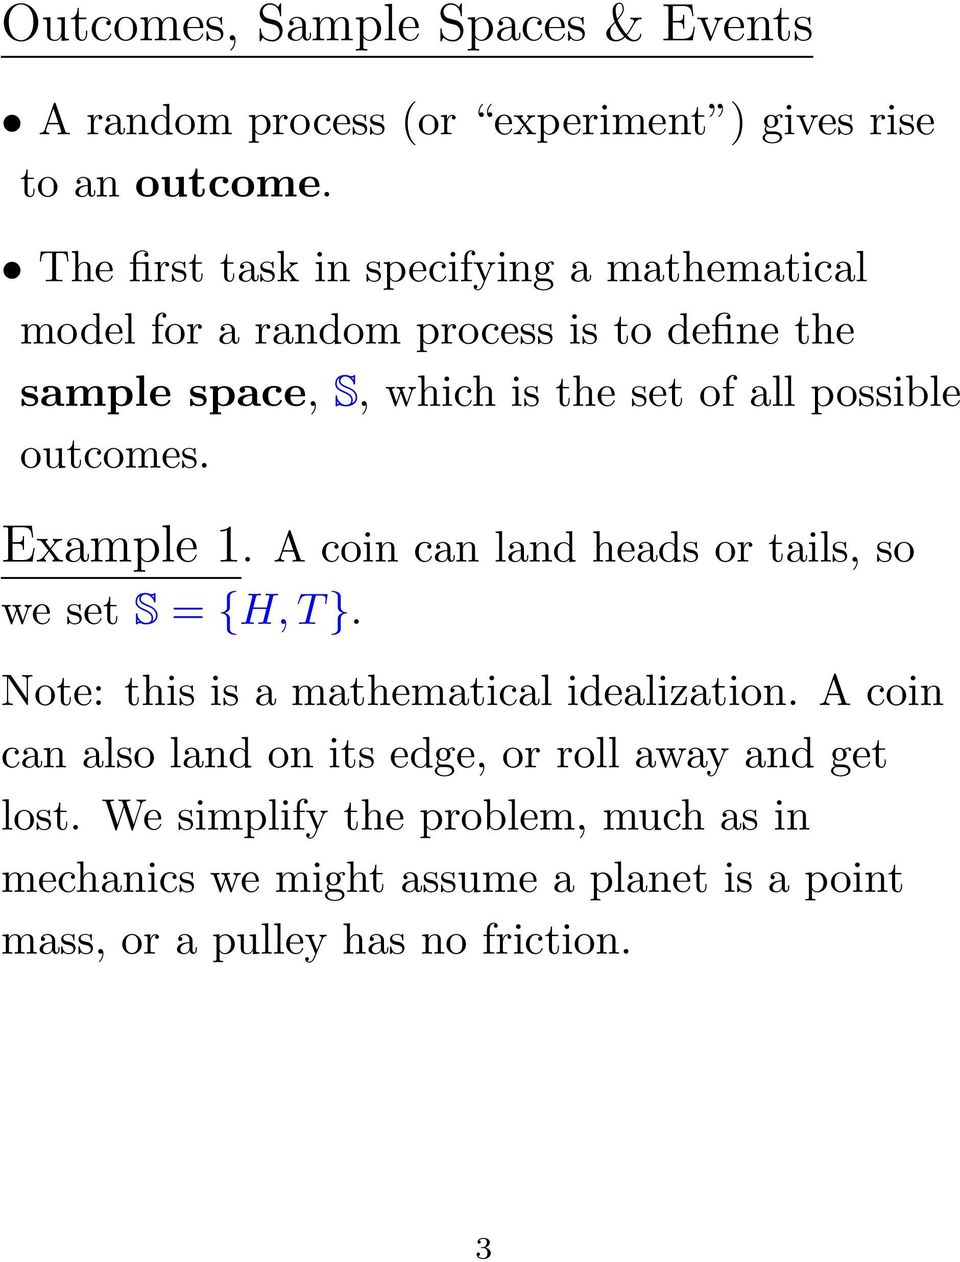 possible outcomes. Example 1. A coin can land heads or tails, so we set S = {H, T }. Note: this is a mathematical idealization.